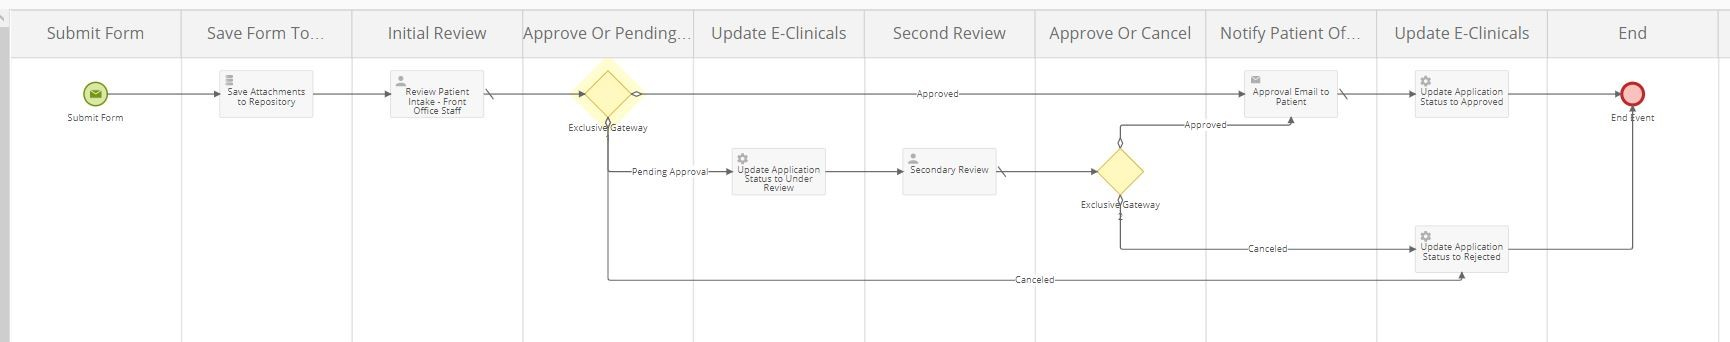 Patient intake process diagram in Laserfiche Forms